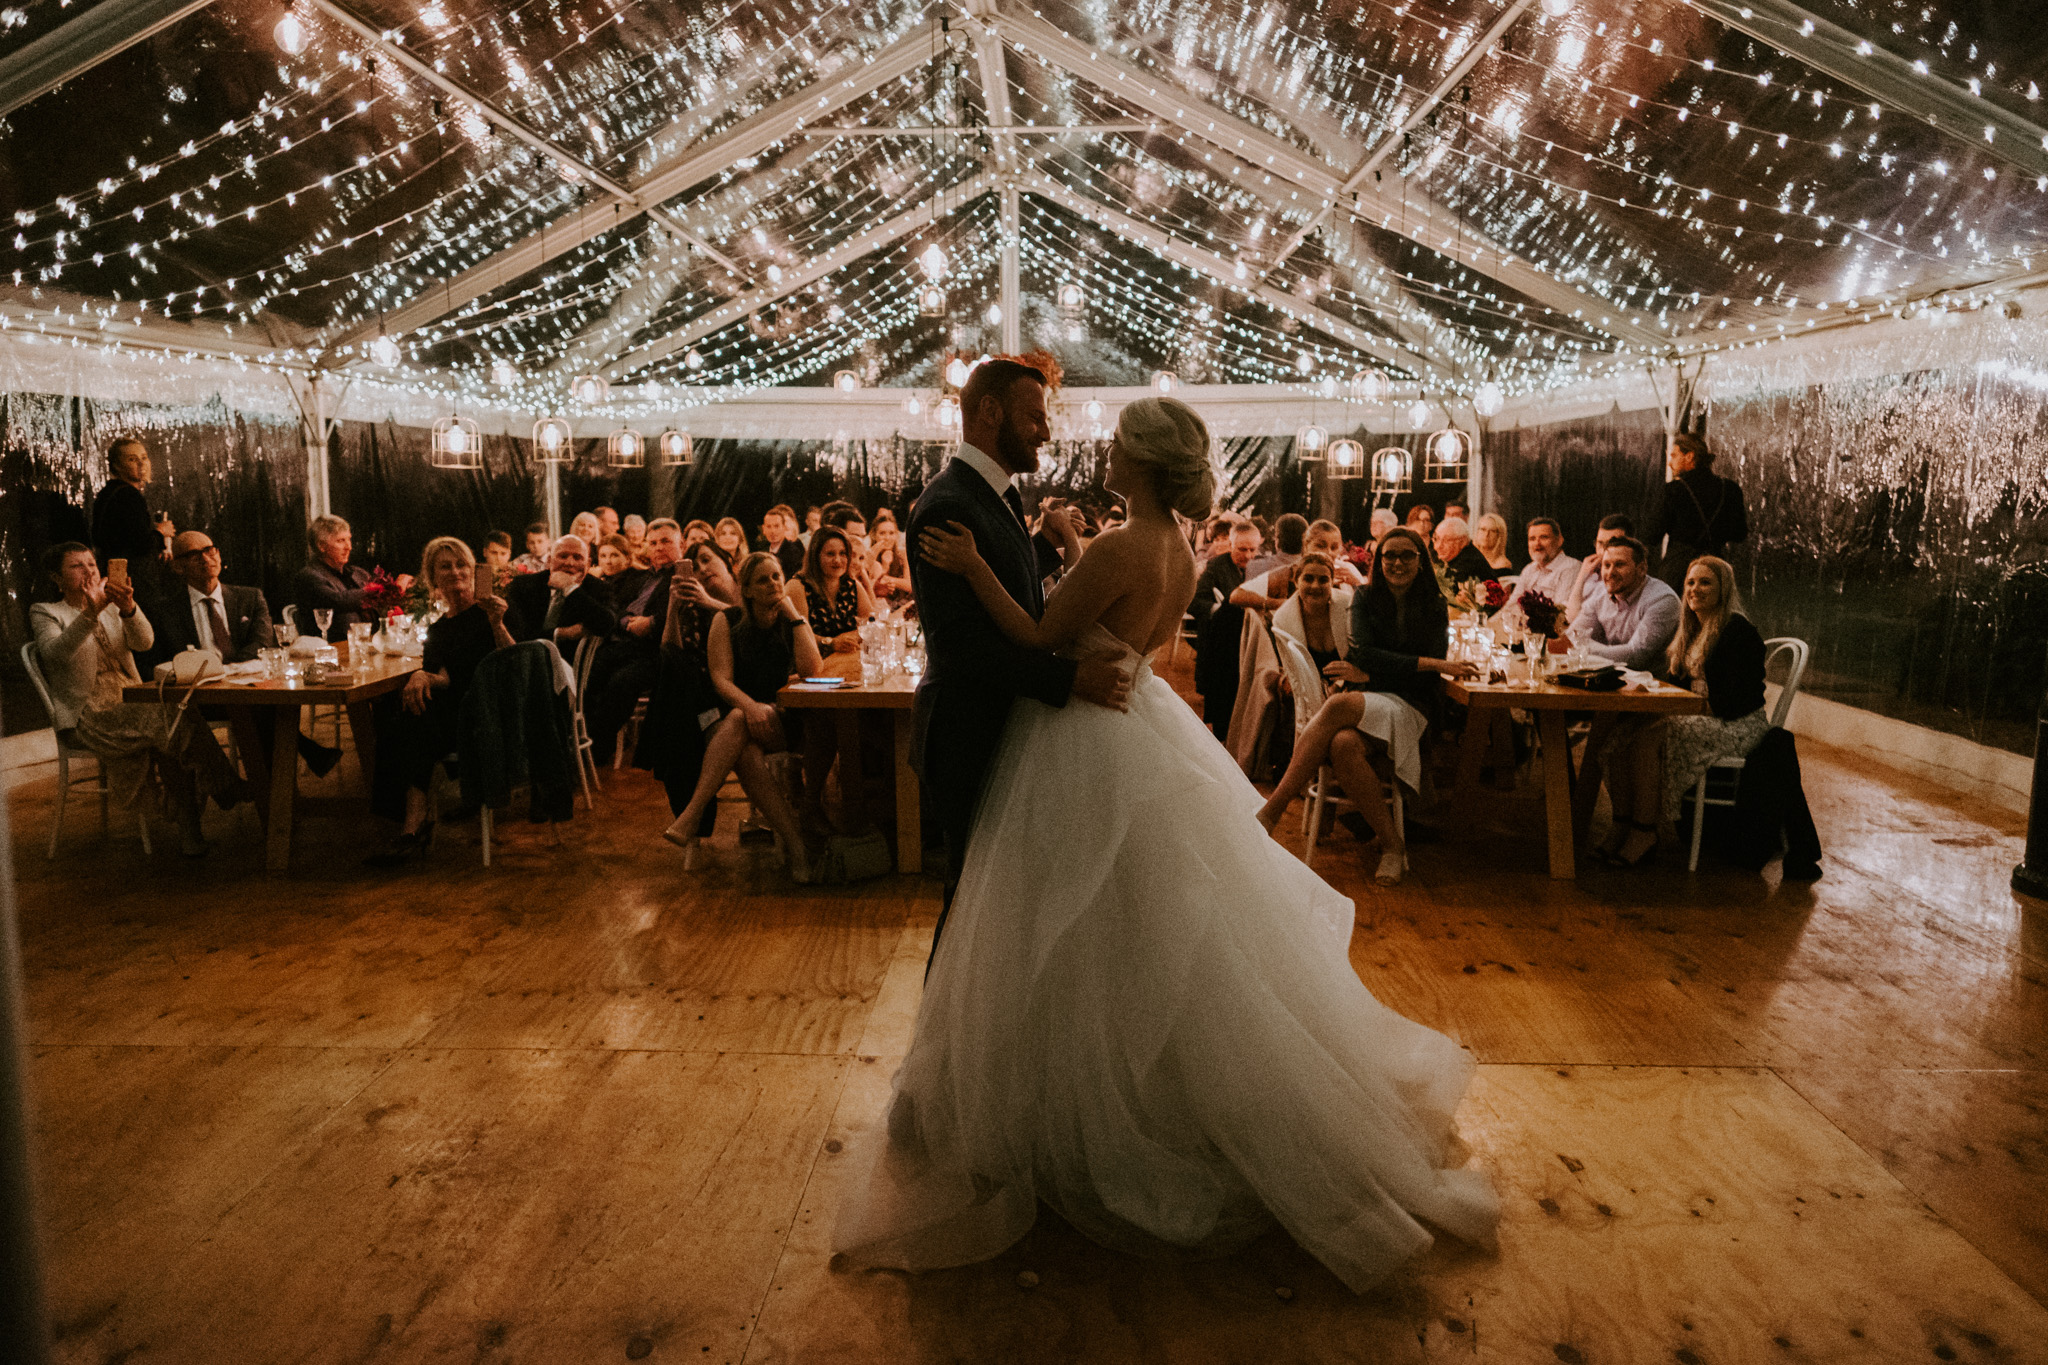 Fairy Light Marquee Treatment | from $1240 (360m) 18mx10m Marquee